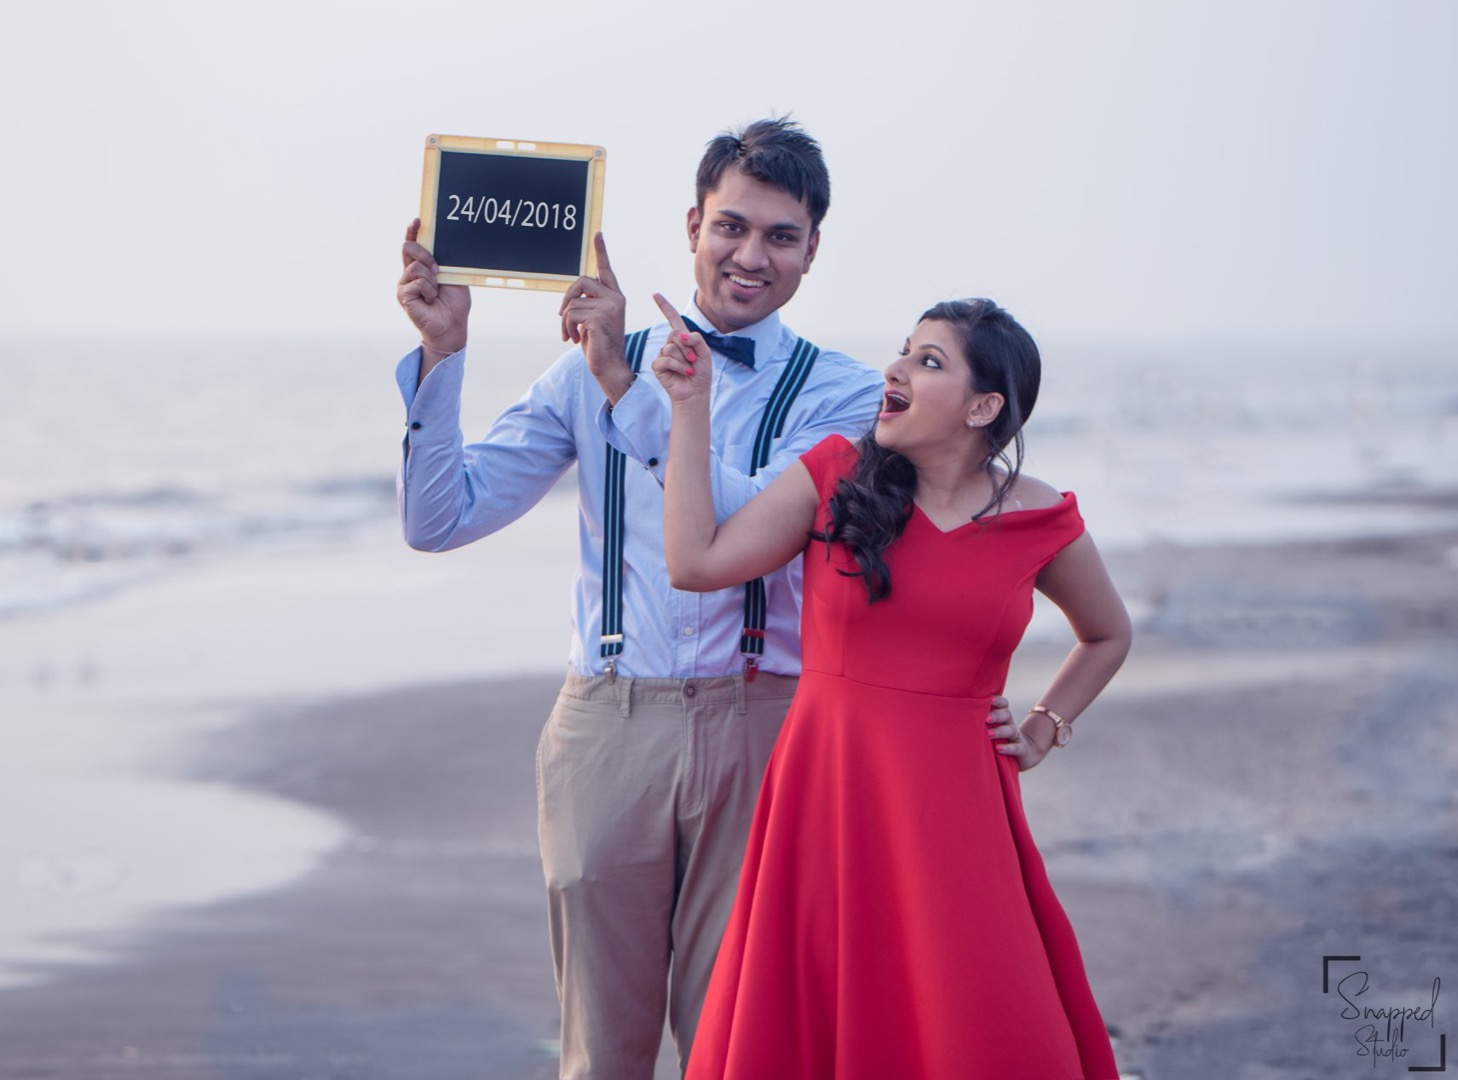 Cute Pre-wedding Images